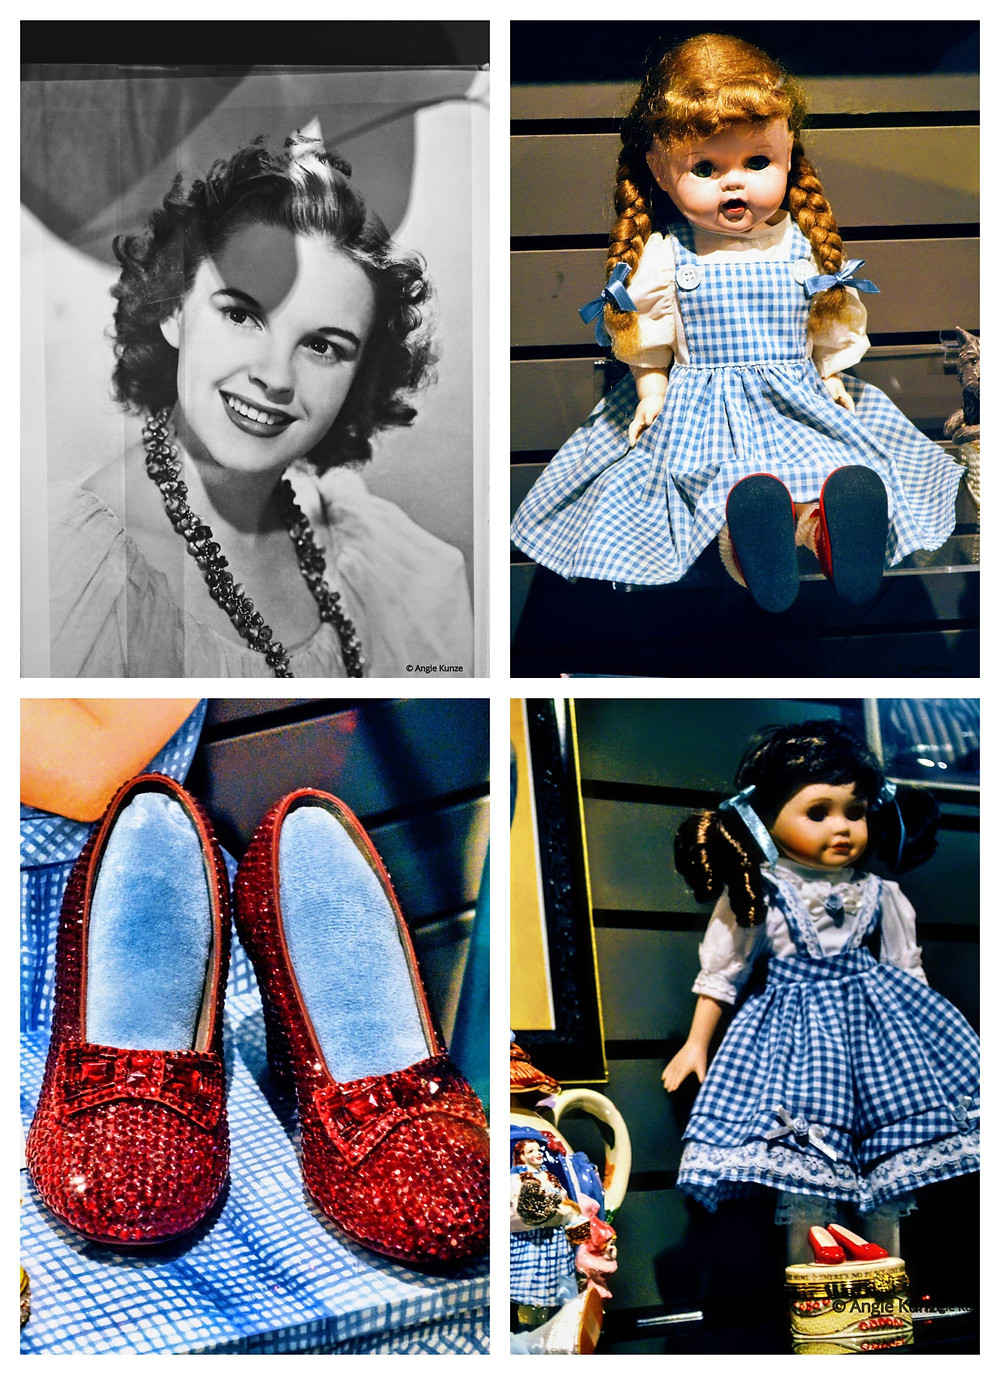 Dorothy Gale, Judy Garland Memorabilia at the Wizard of Oz Museum in Wamego Kansas